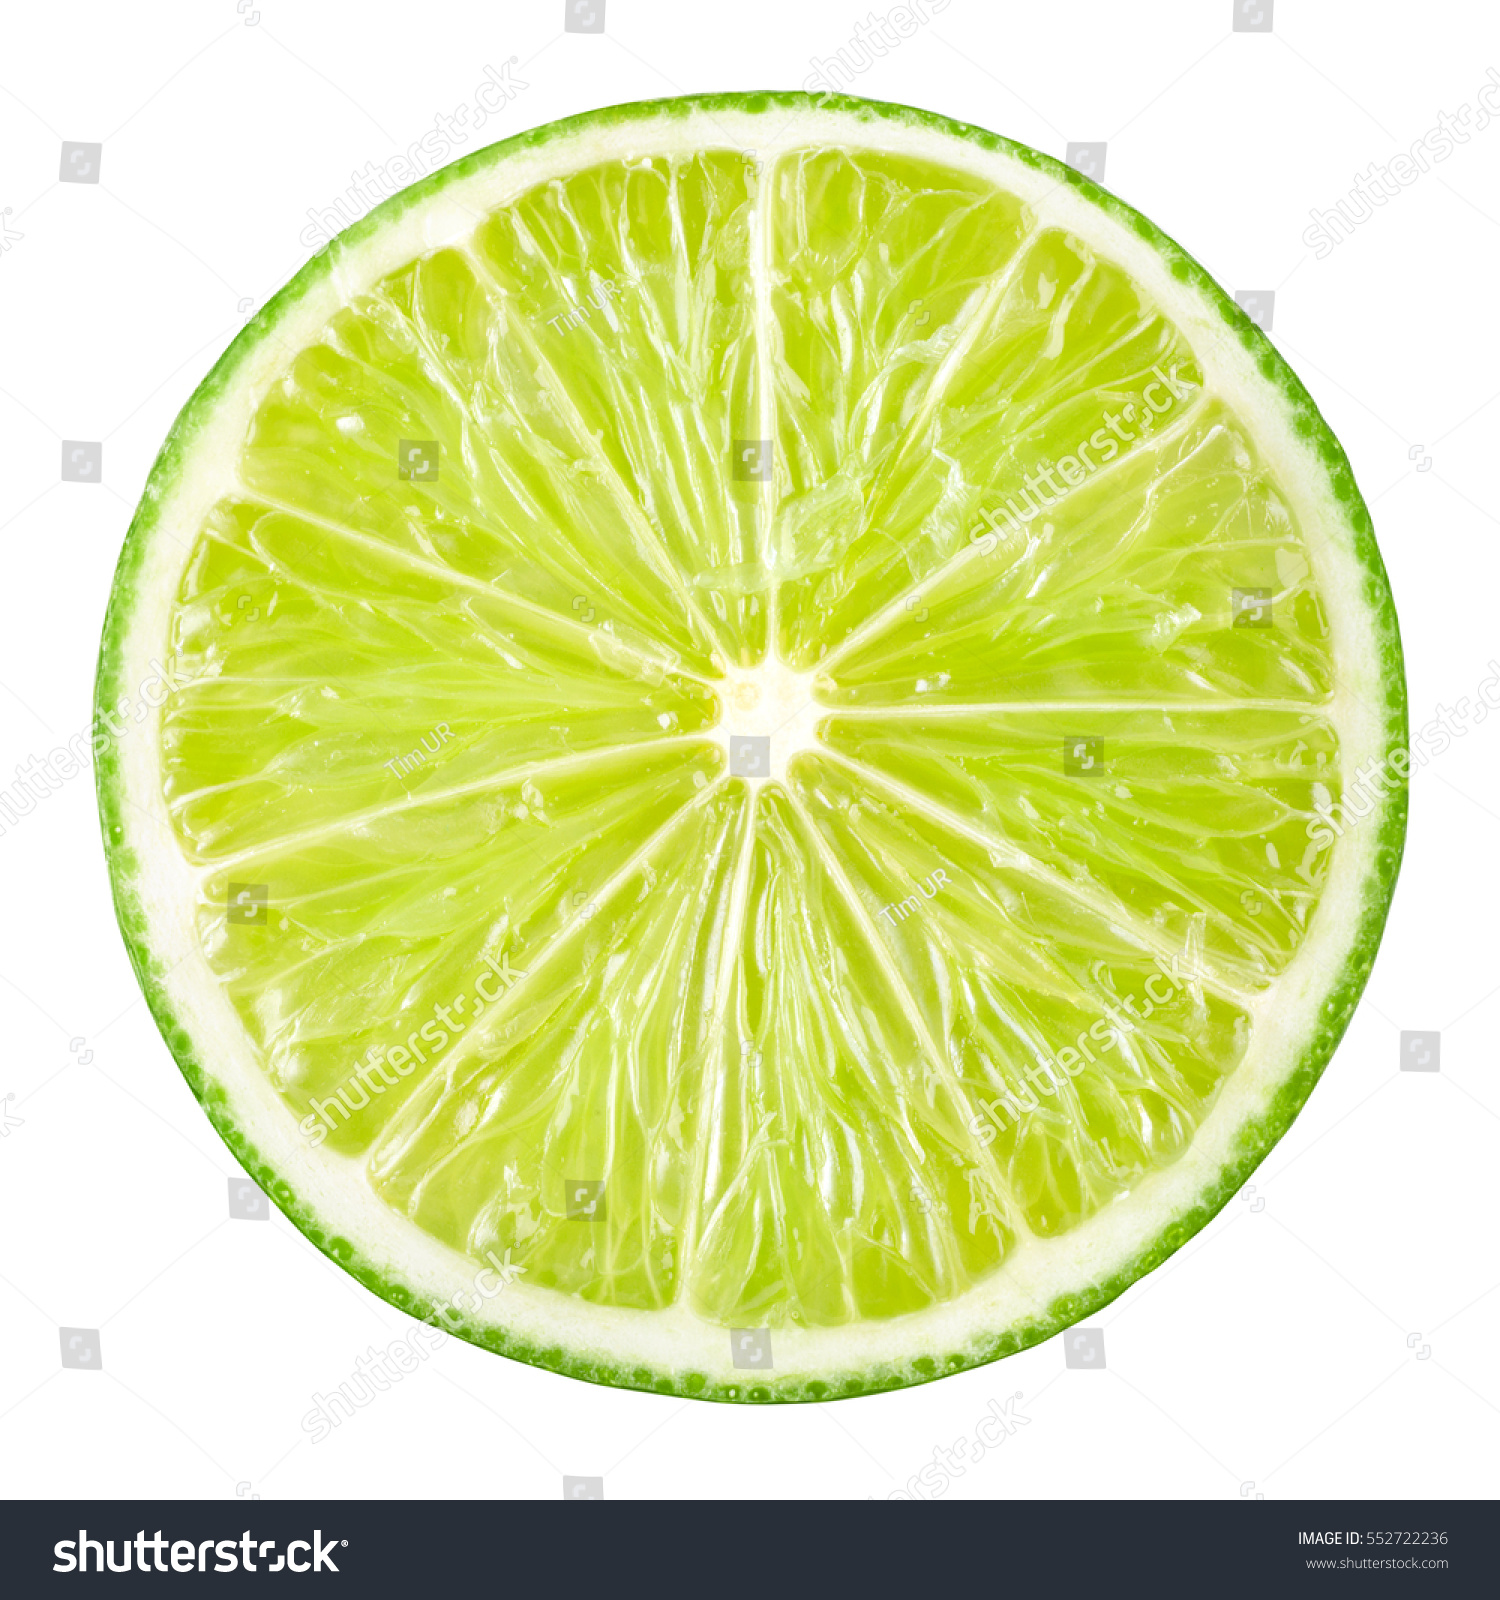 Lime slice. Fruit isolated on white background. With clipping path. #552722236